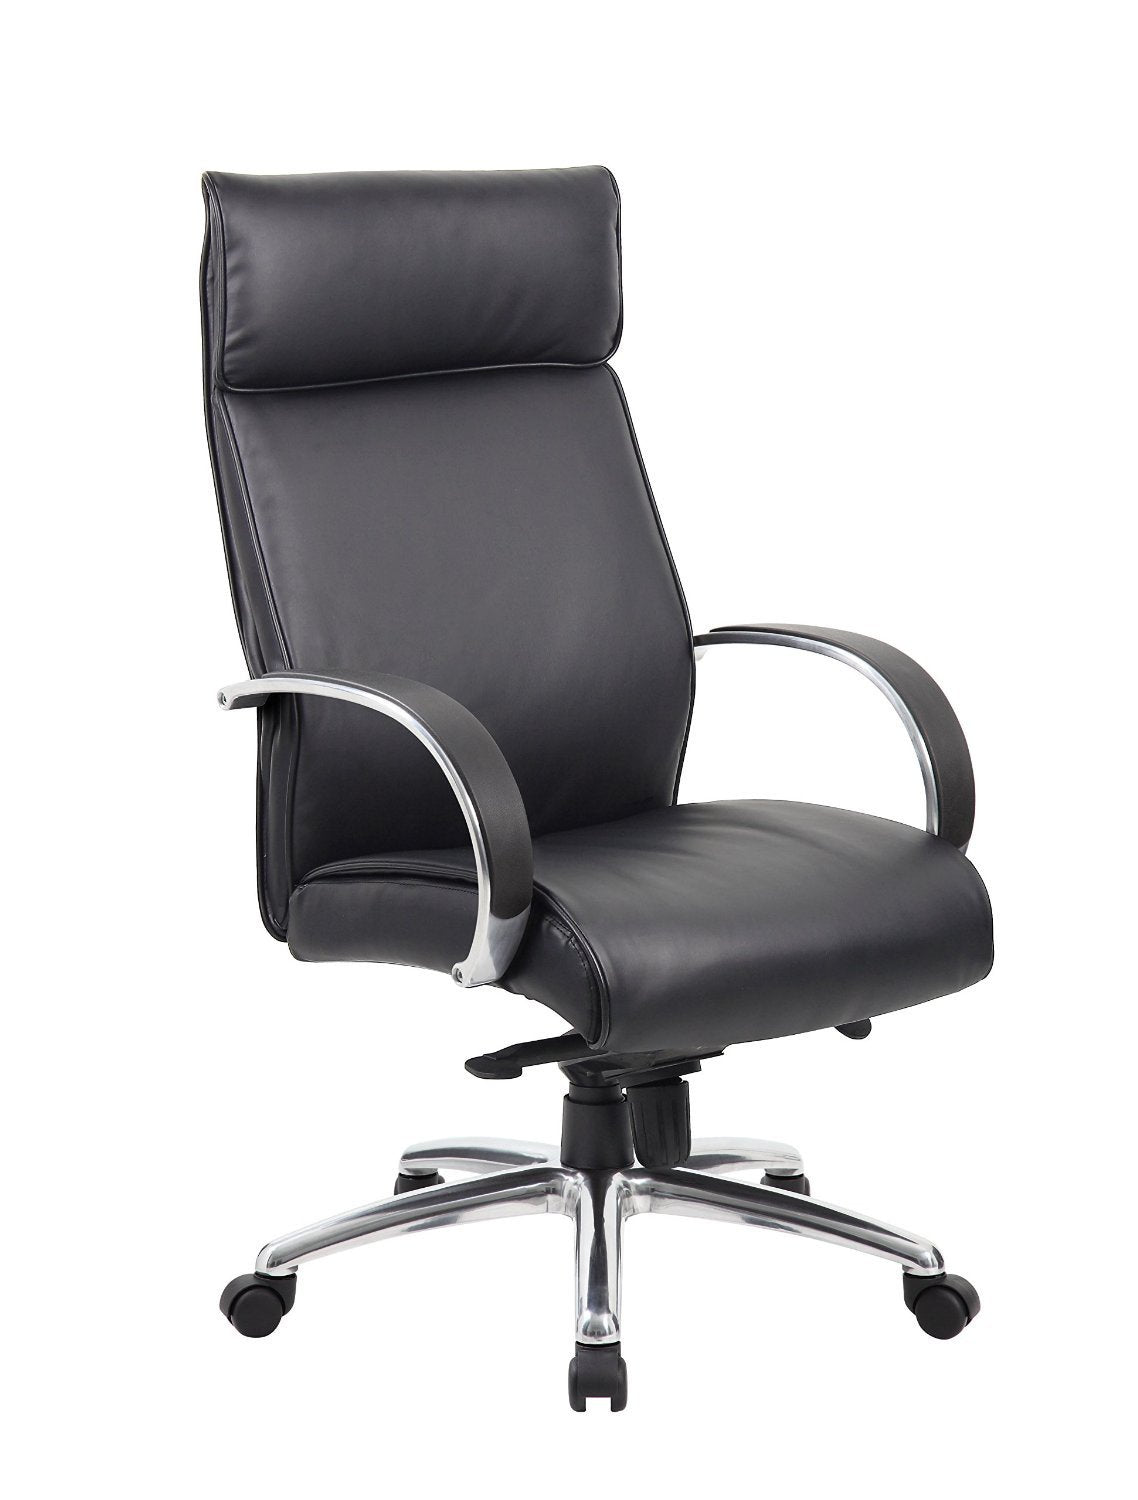 Upholstery | Executive | Office | Finish | Chair | Black | Boss | Knee | Back | High